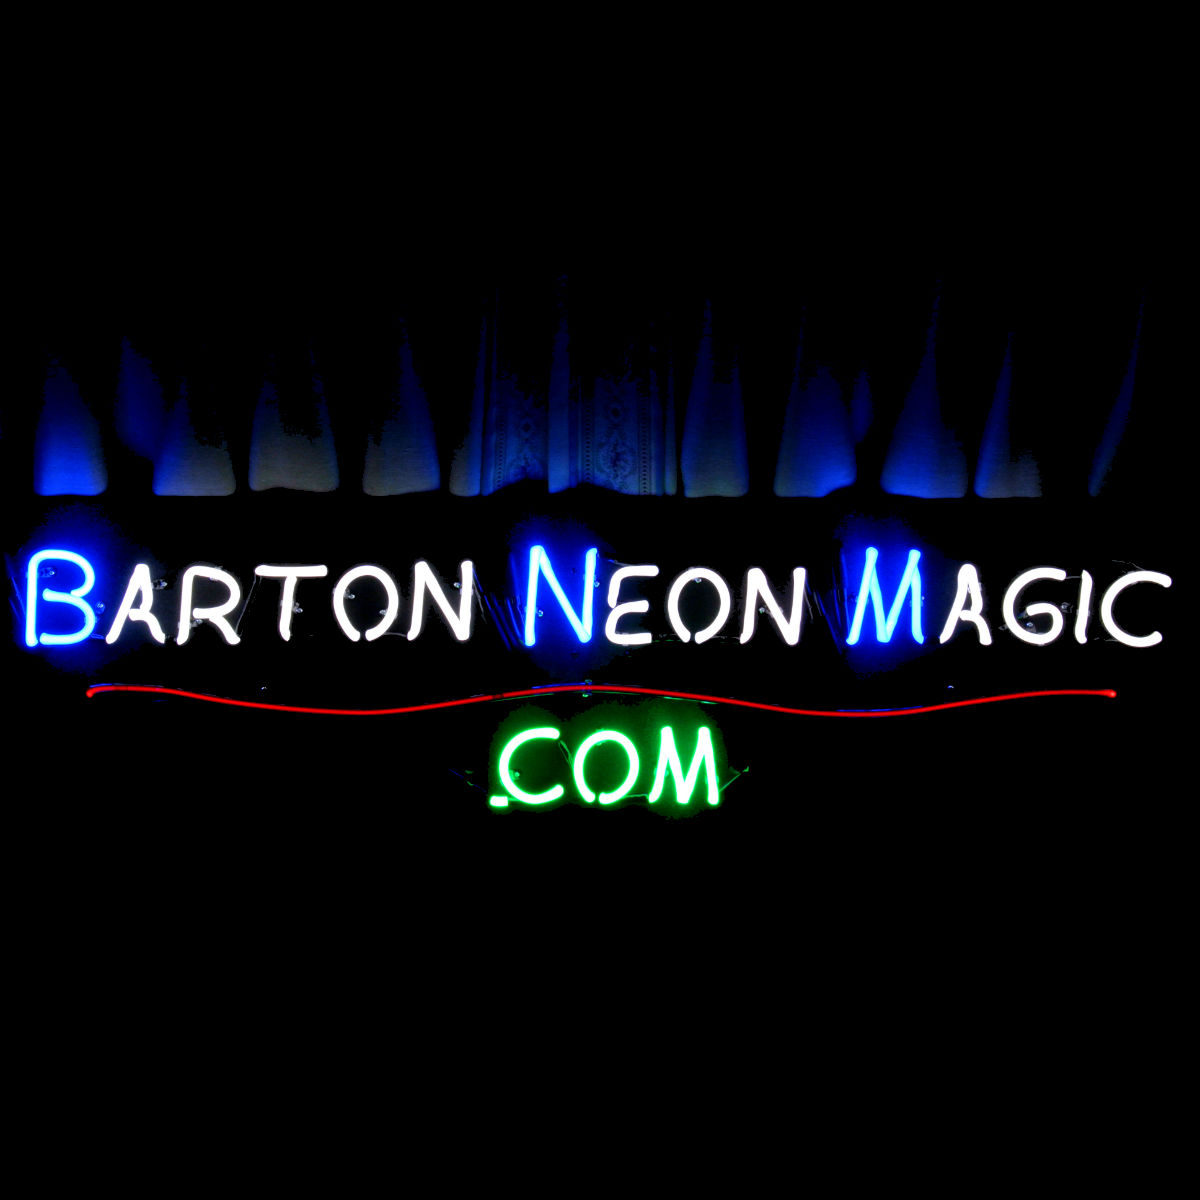 BartonNeonMagic.com - Stunning Custom Neon Artworks, Sculptures, and Chandeliers by John Barton - Famous USA Neon Light Sculptor